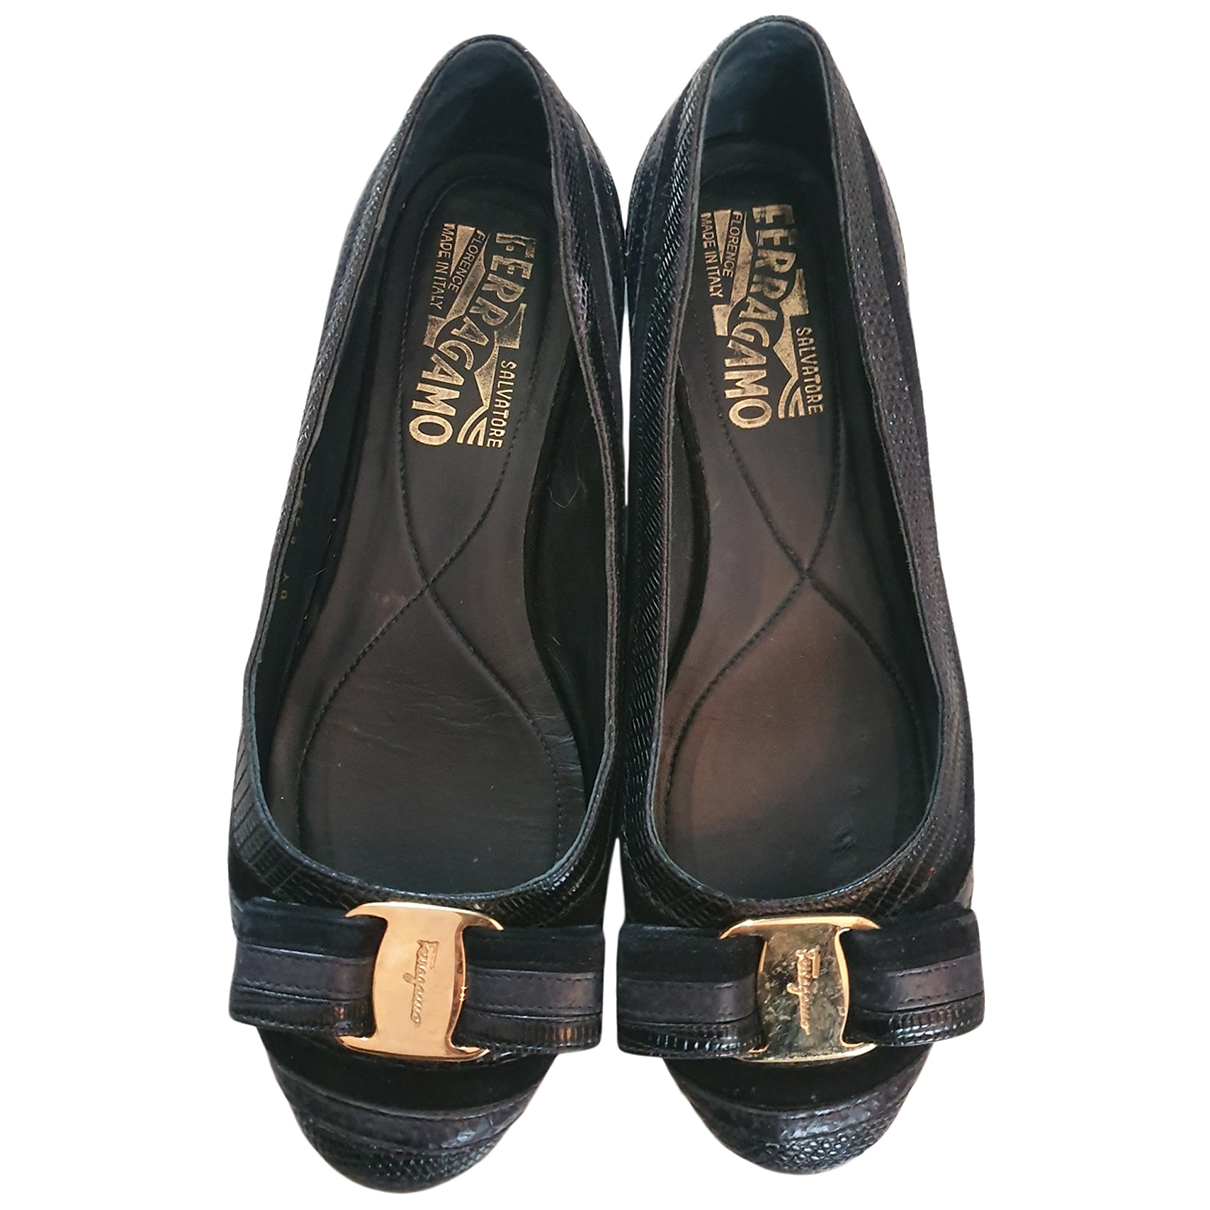 Salvatore Ferragamo \N Black Leather Ballet flats for Women 35 EU